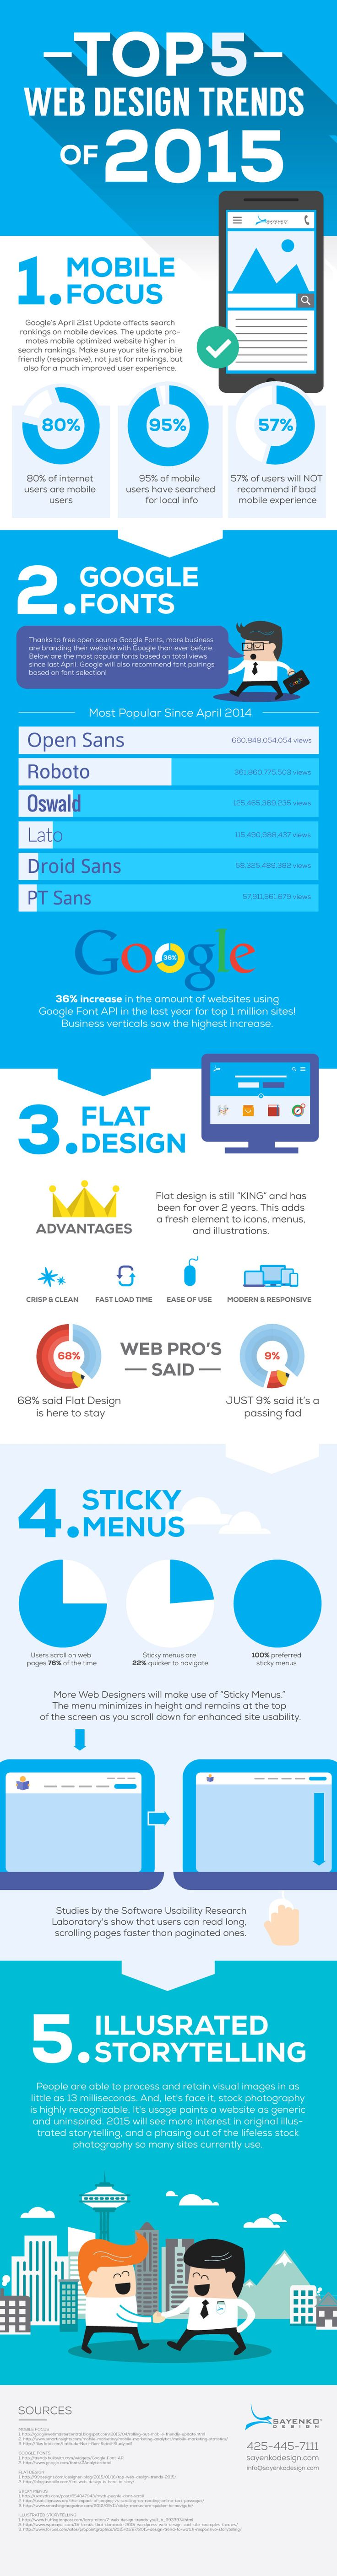 The web design industry is constantly trending towards modernity - enhancing online interactions, streamlining layouts, and improving the way information is presented to users. These trends are always important to stay on top of, both for web designers and digital marketers, as well as business owners. Since web design is a visual media, we've created an infographic to help illustrate the data and dynamics of our top web design trends for 2015.